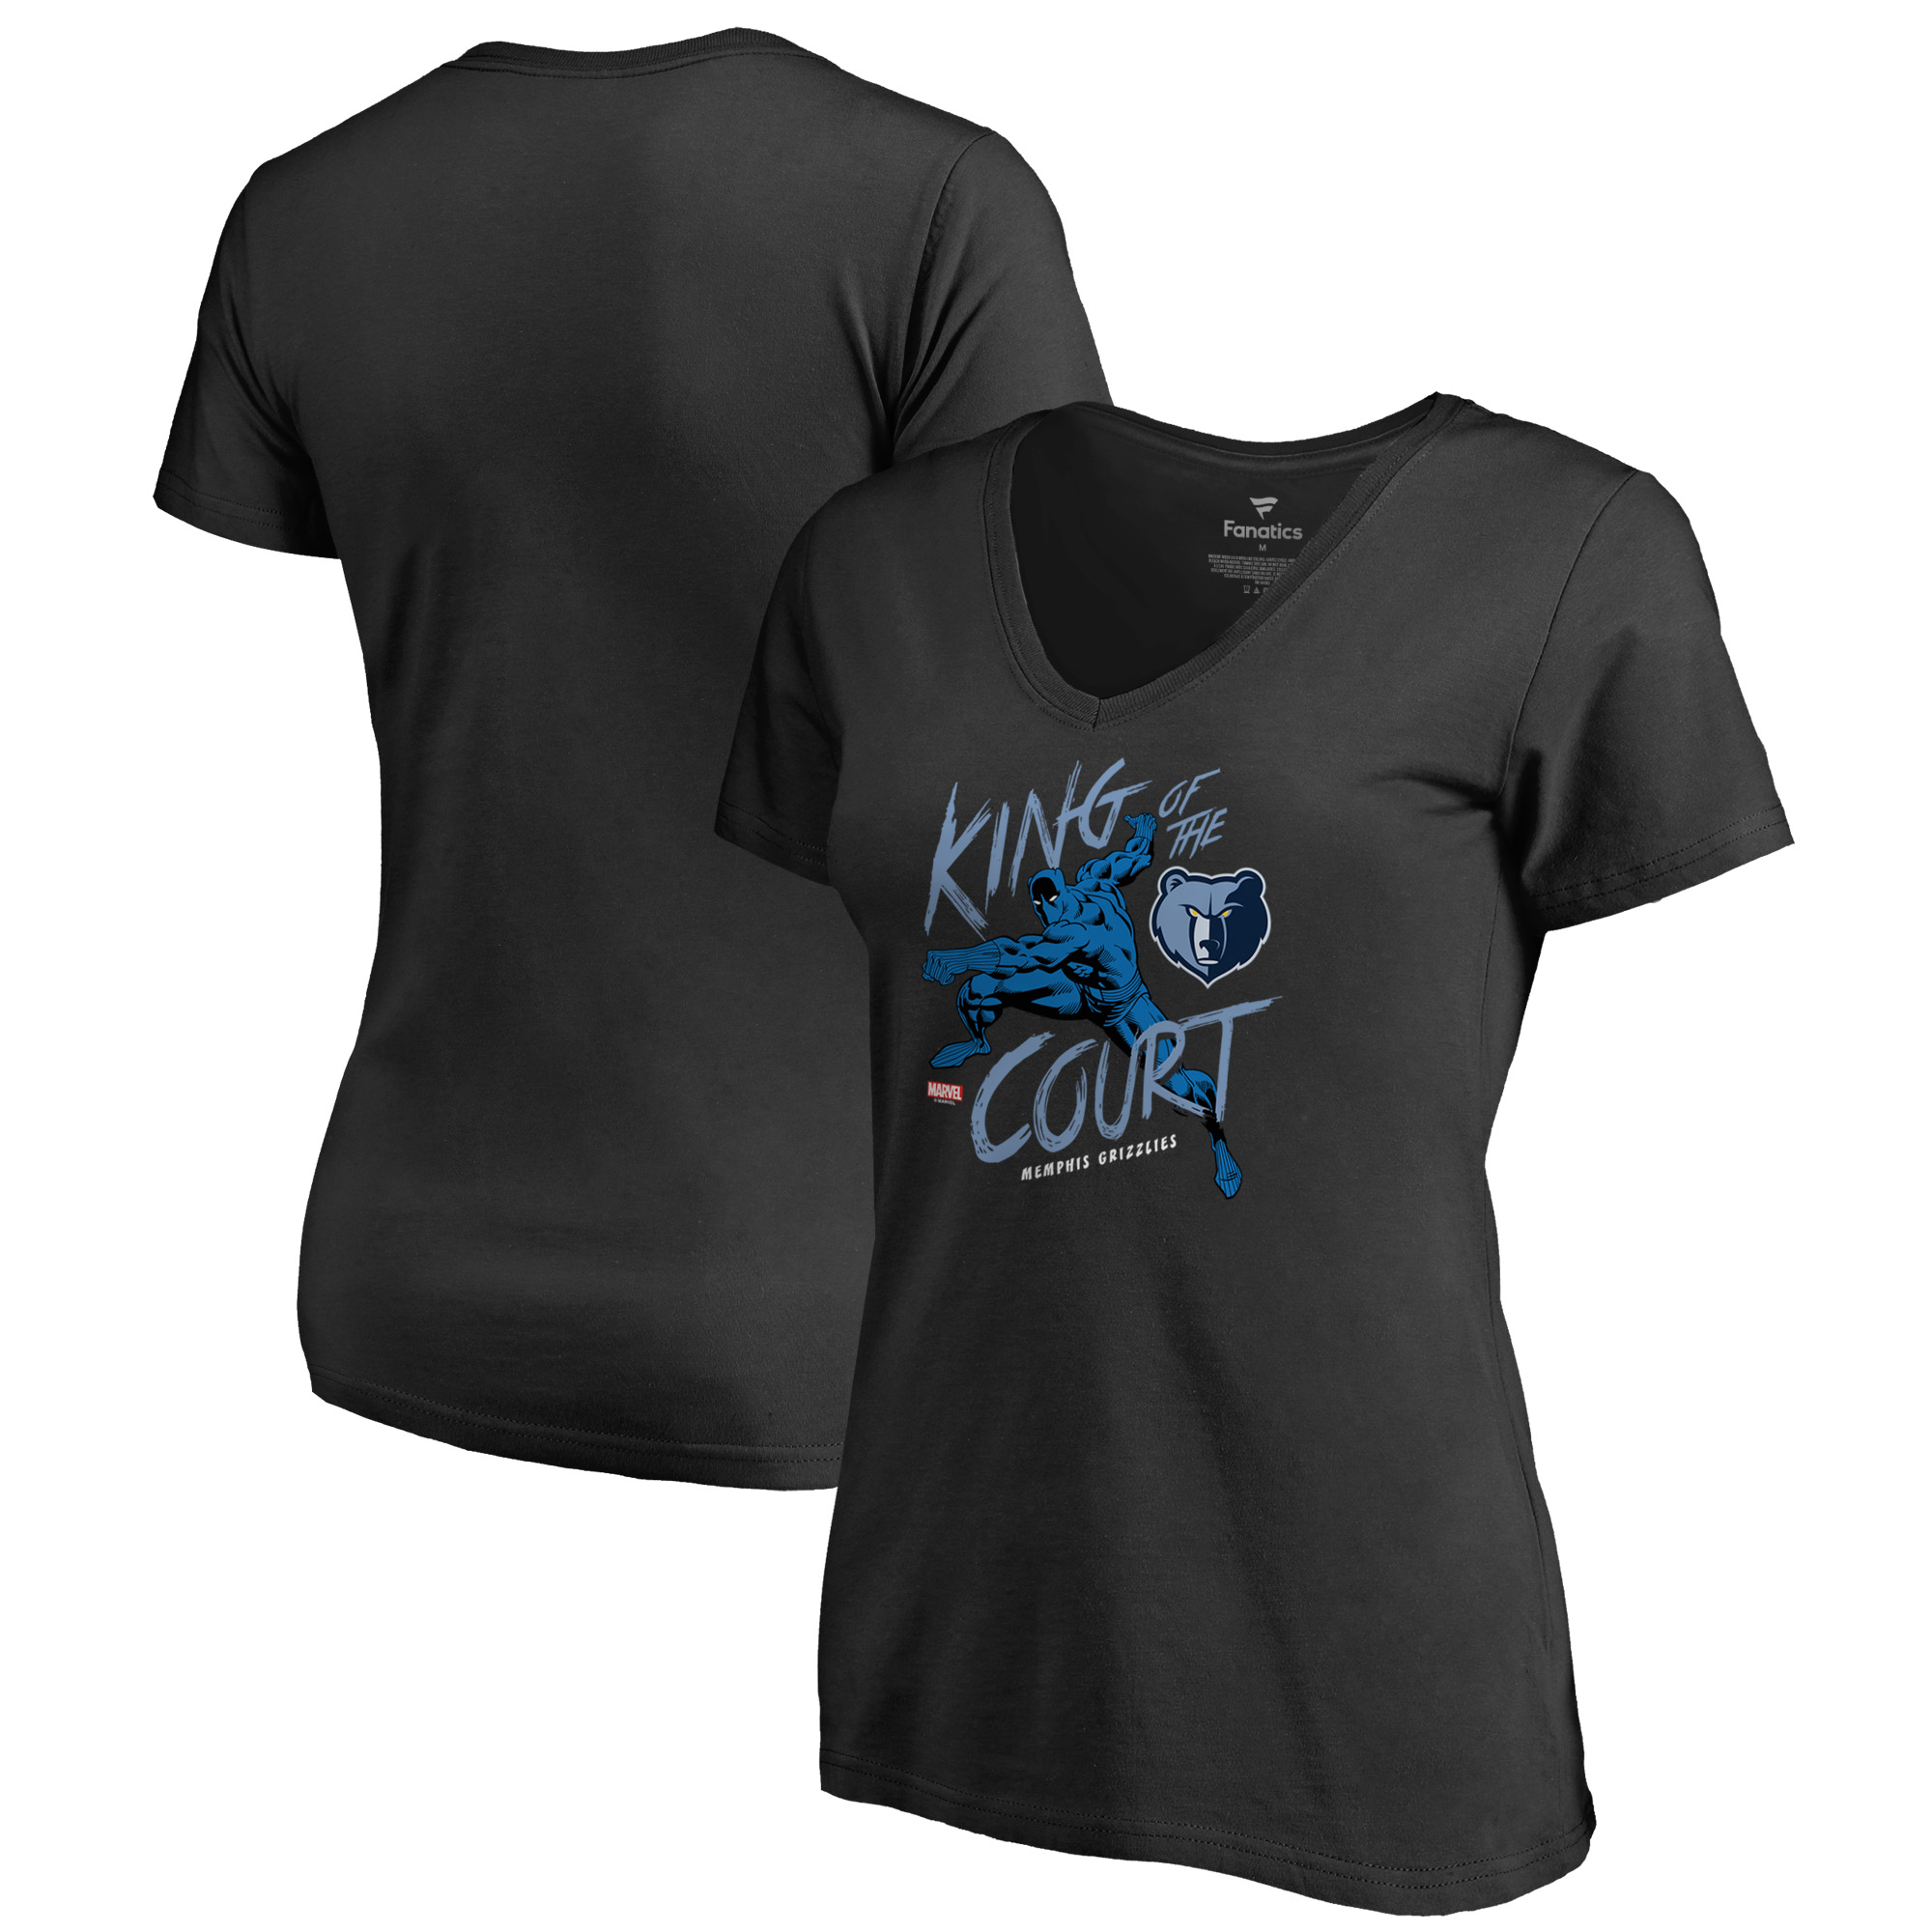 Memphis Grizzlies Fanatics Branded Women's Marvel Black Panther King of the Court V-Neck T-Shirt - Black